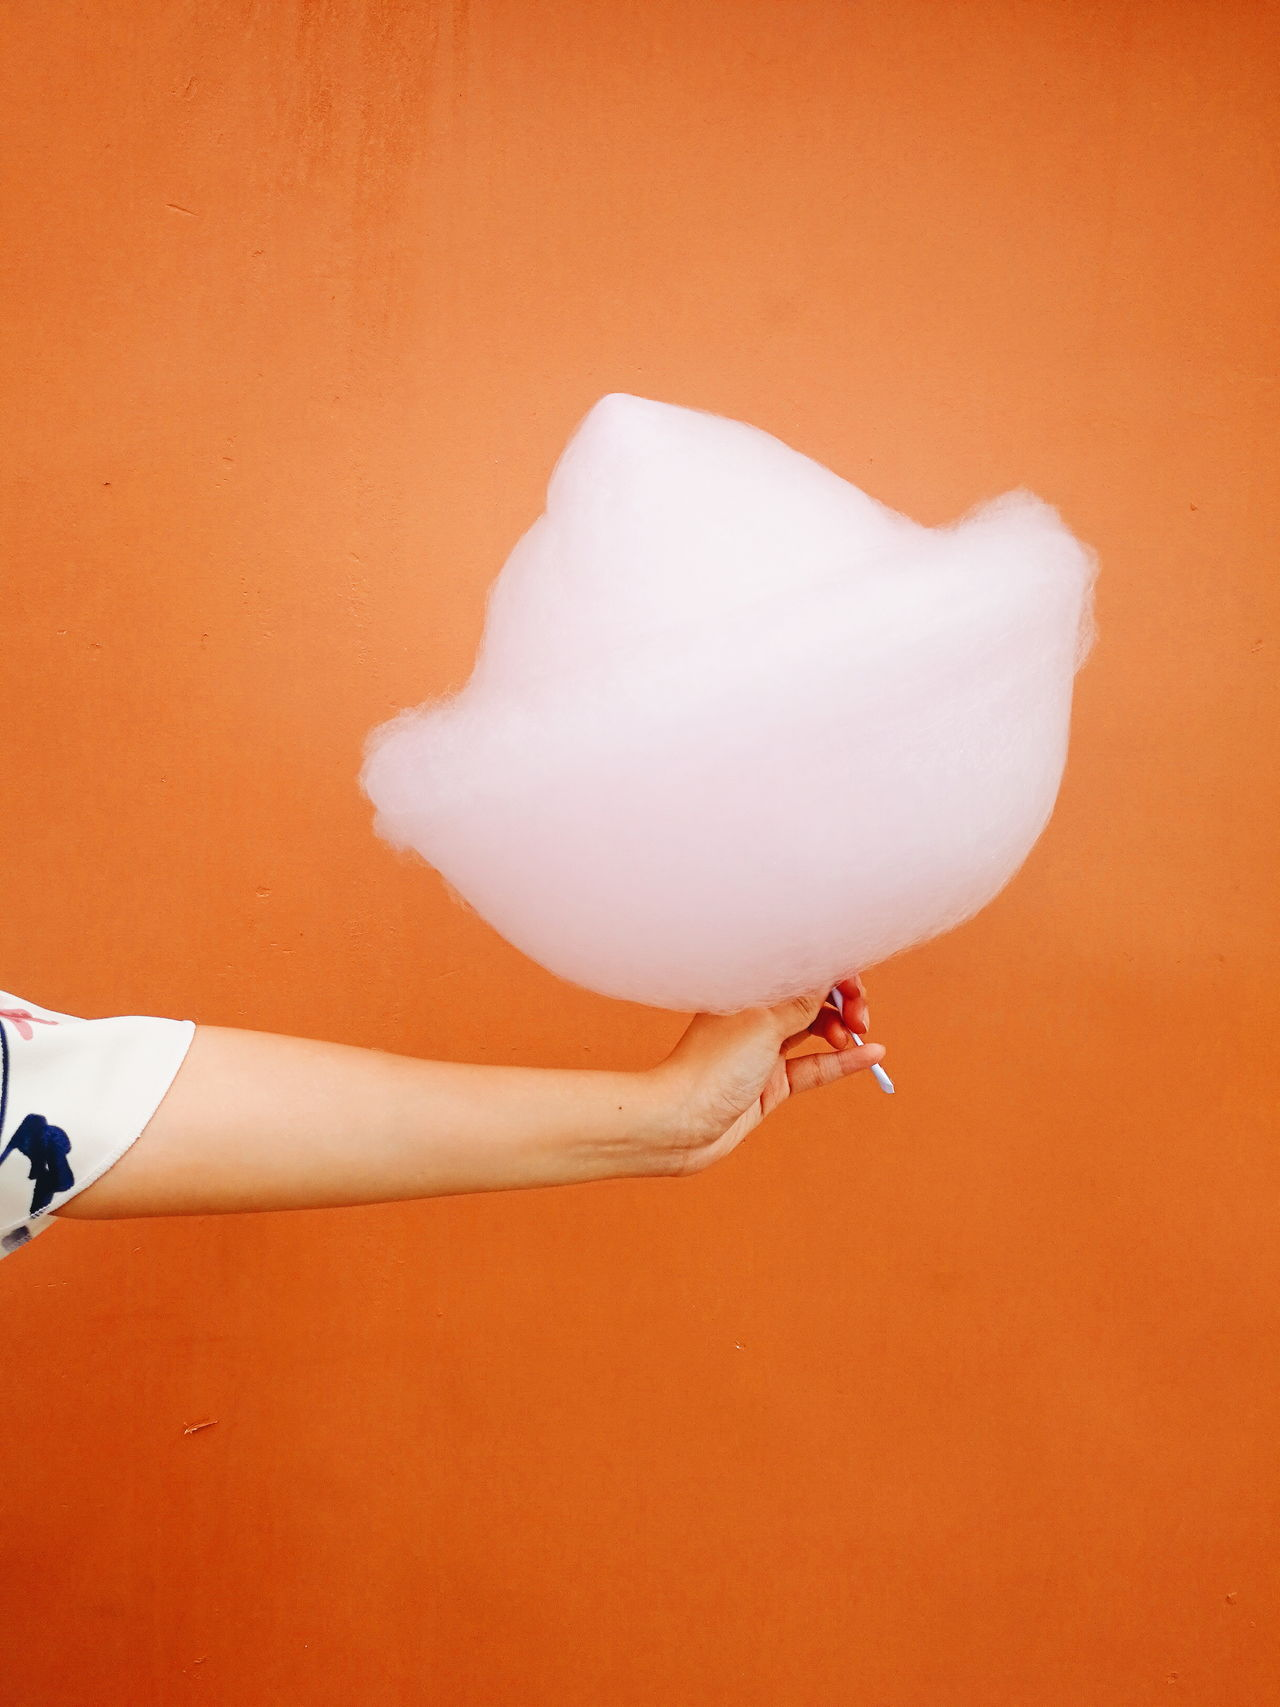 Fluff Colored Background One Person People Human Body Part Indoors  Candy Sweets Cotton Candy Sugar